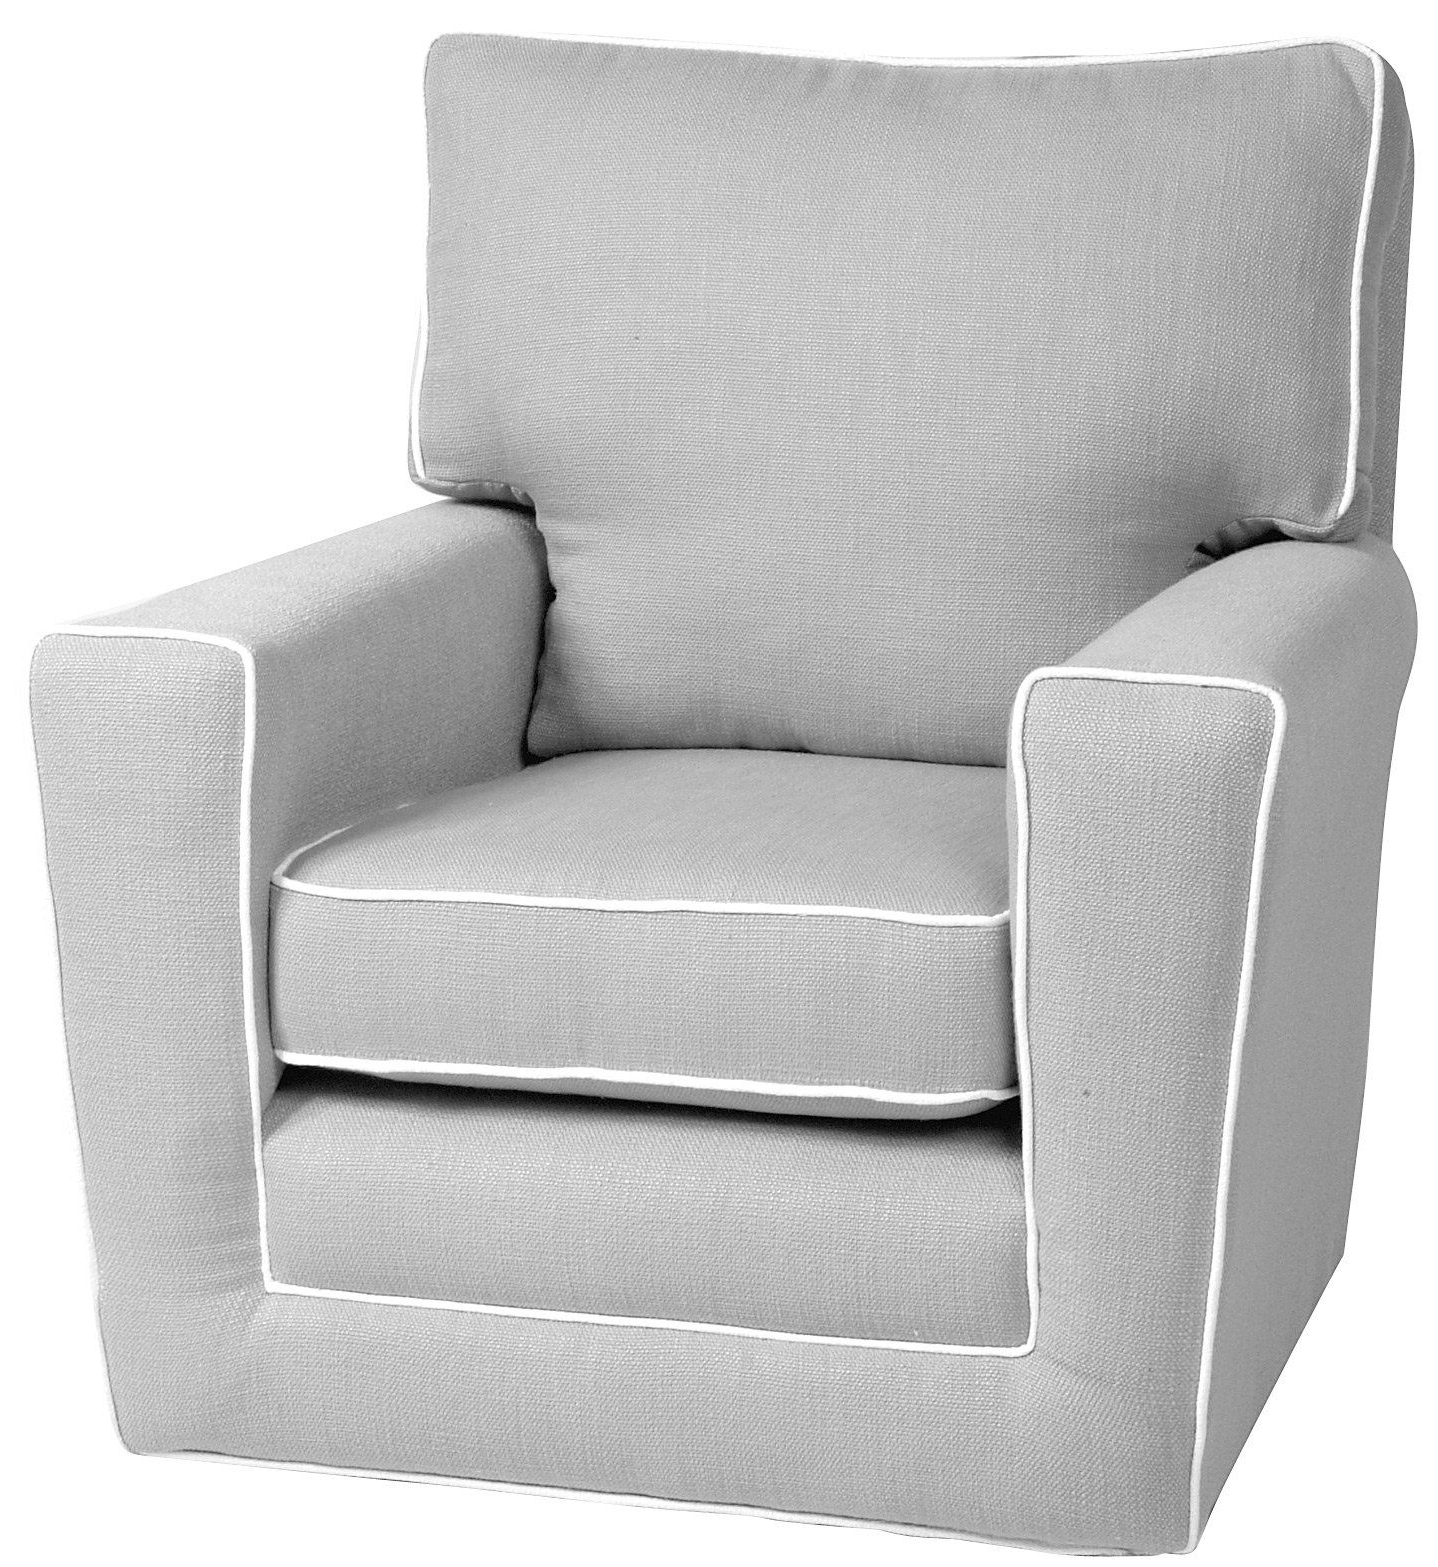 Katrina Grey Swivel Glider Chairs Throughout 2019 I Will Own A Little Castle Recliner For My Nursery No Way I'd Buy (View 6 of 20)